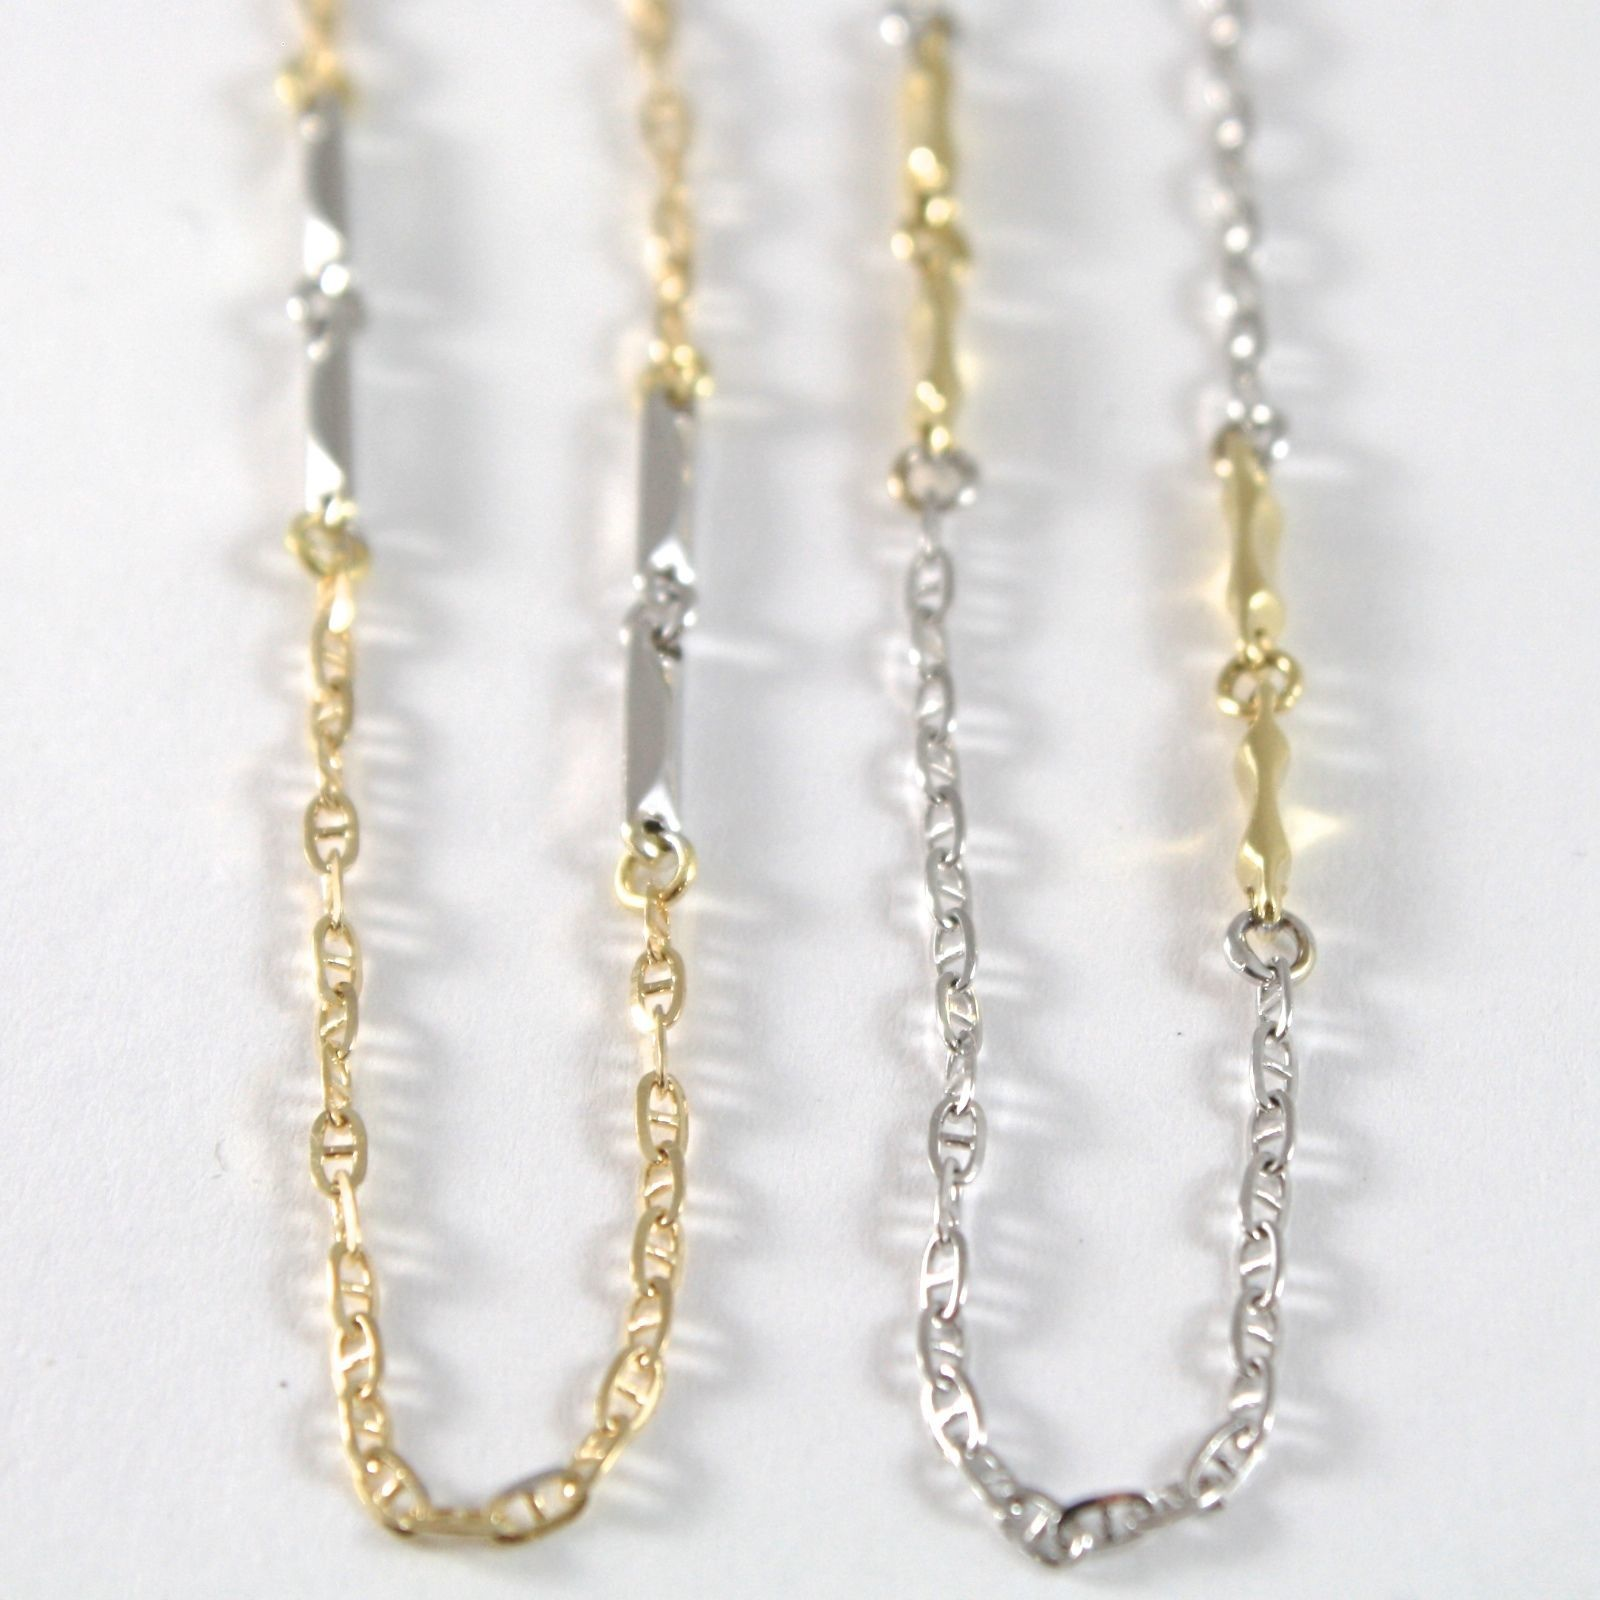 CHAIN CHOKER YELLOW AND WHITE GOLD 750 18K, JERSEY MARINA AND TUBES, 45 CM